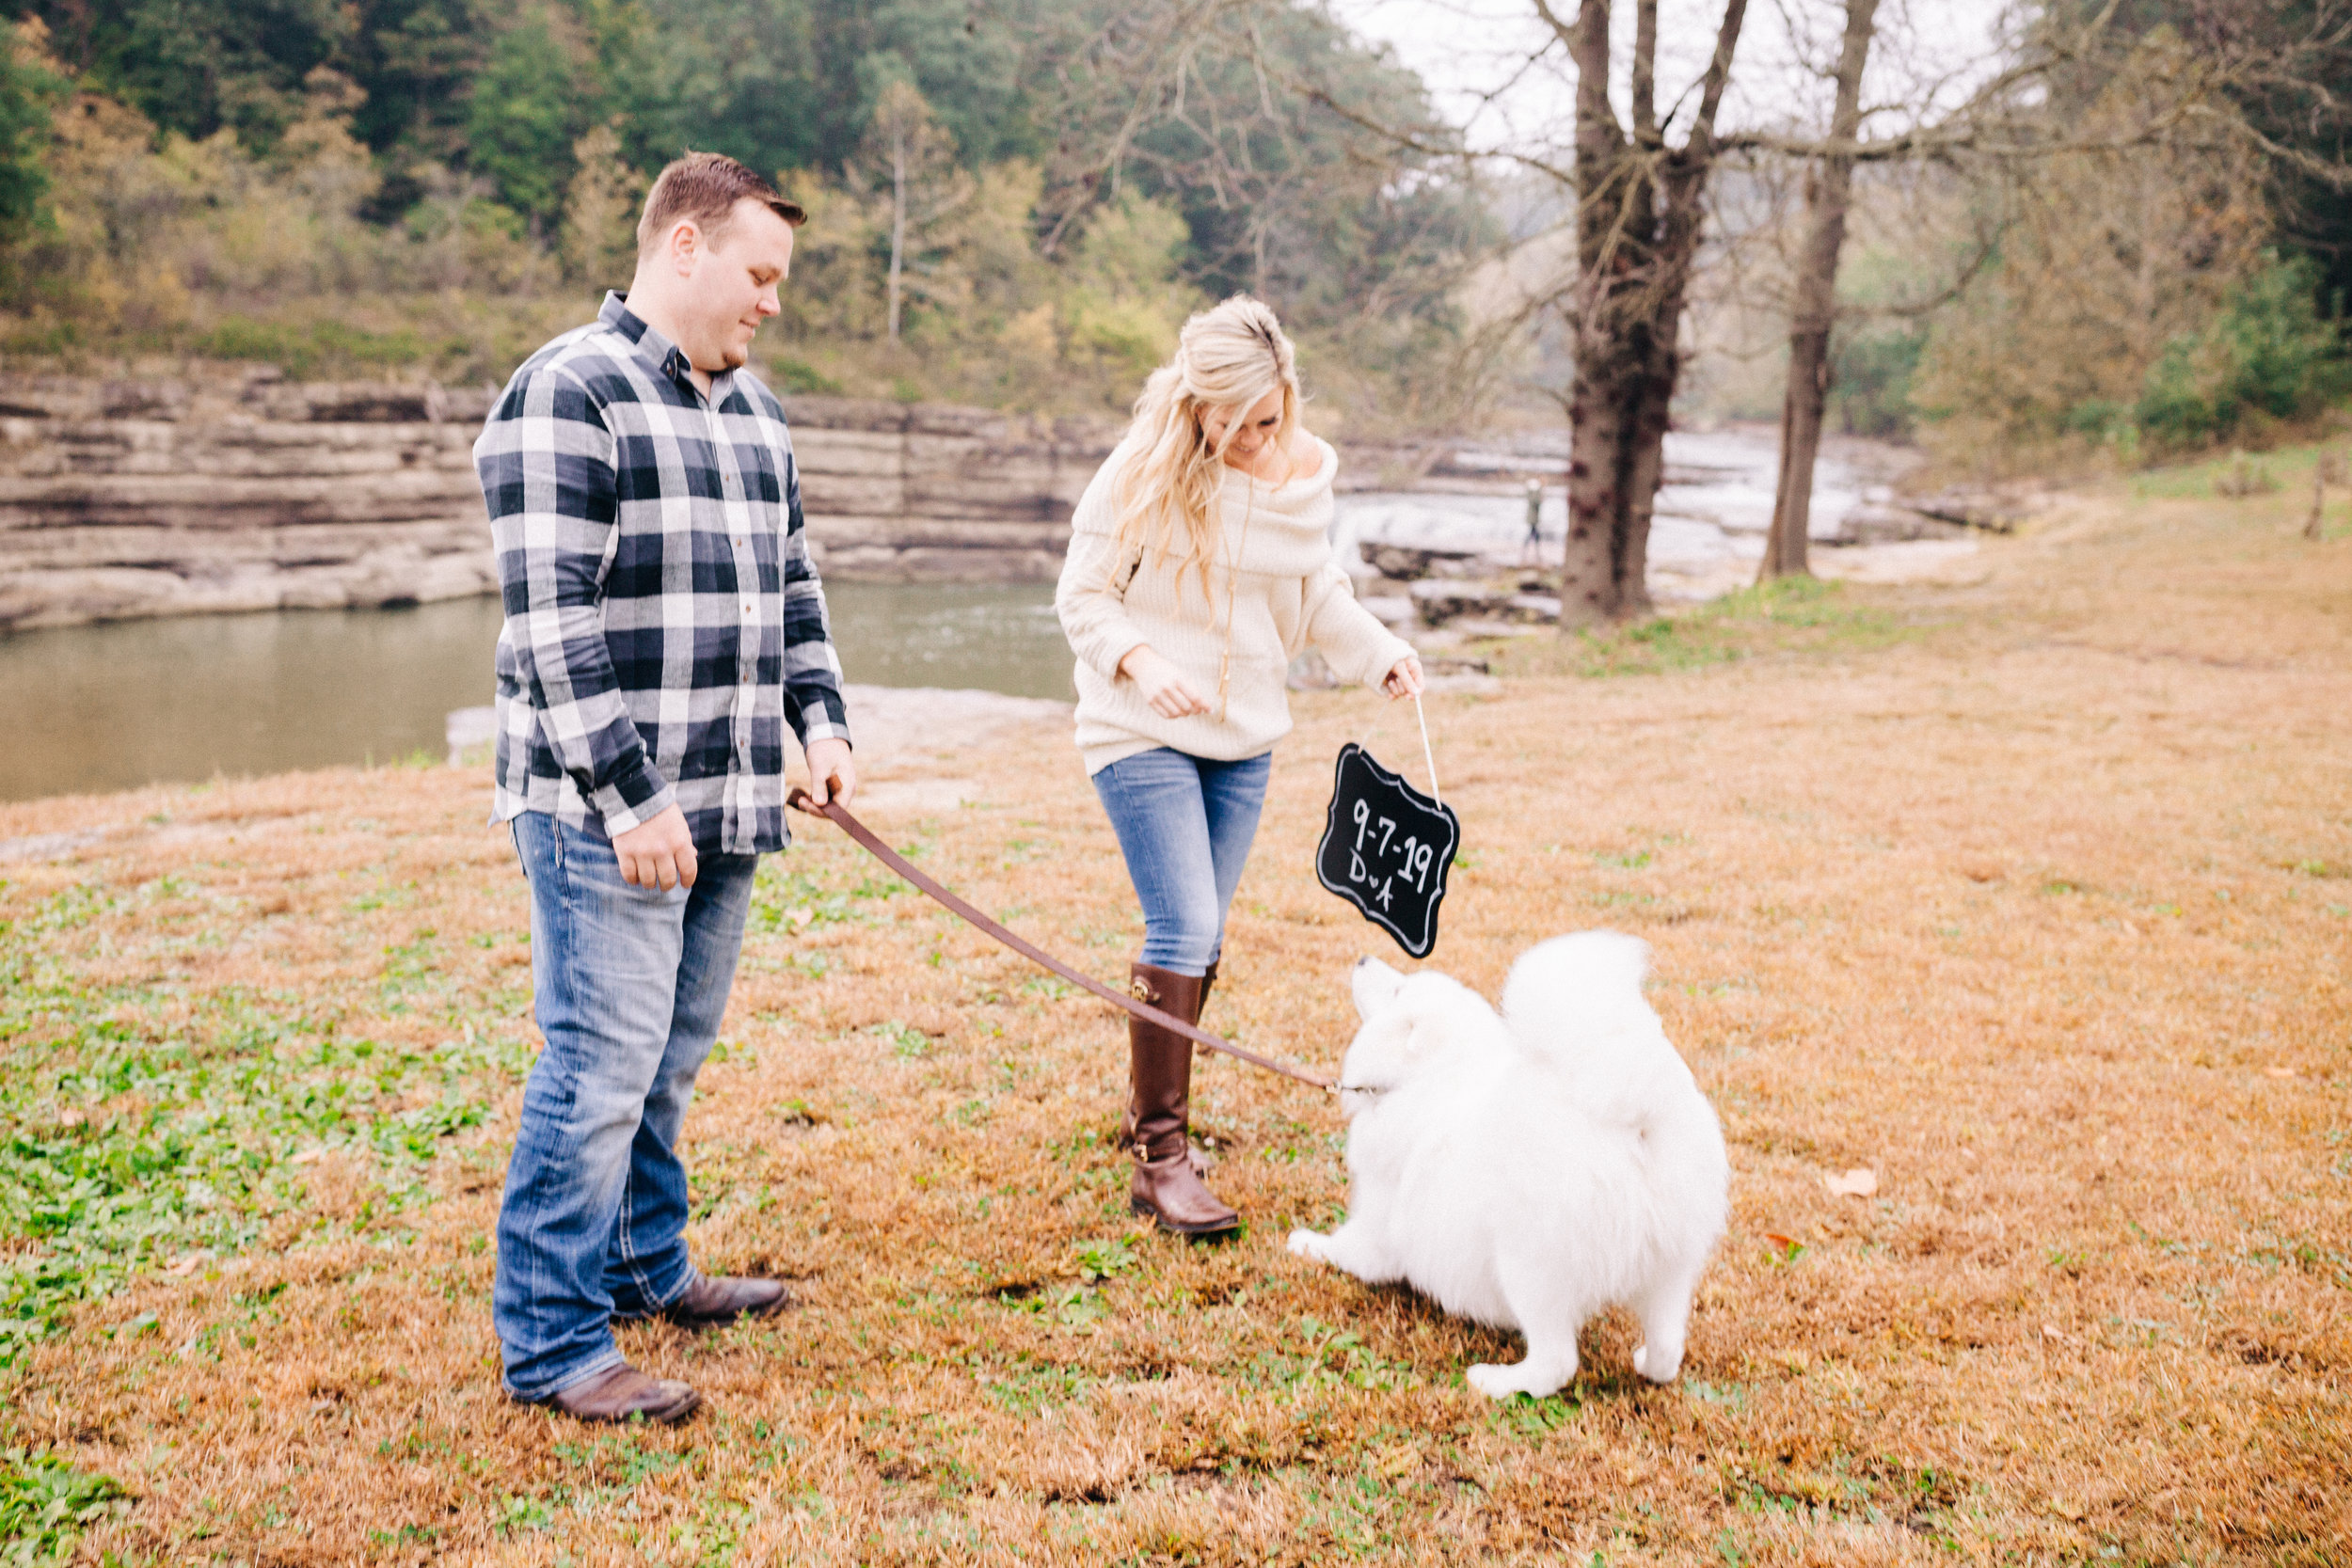 Dorothy_Louise_Photography_Alyssa_Drew_Indiana_Engagement_Cataract_Falls-123.jpg